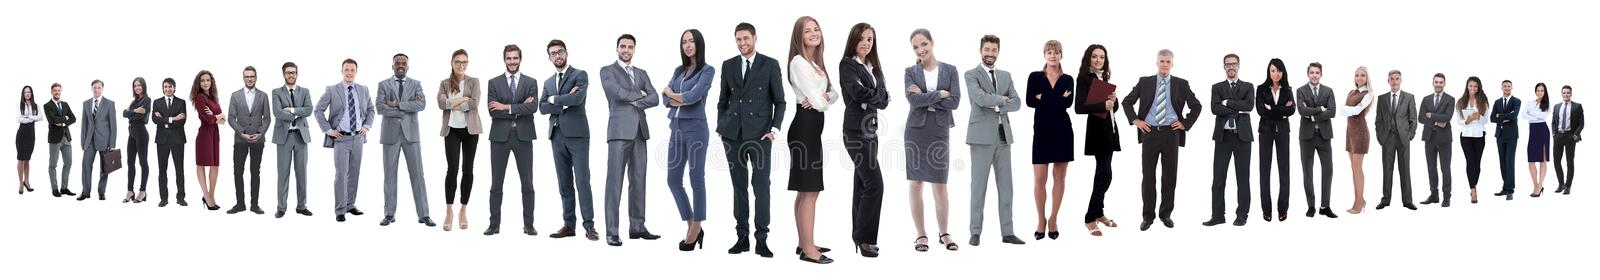 Panoramic photo of a group of confident business people. royalty free stock images